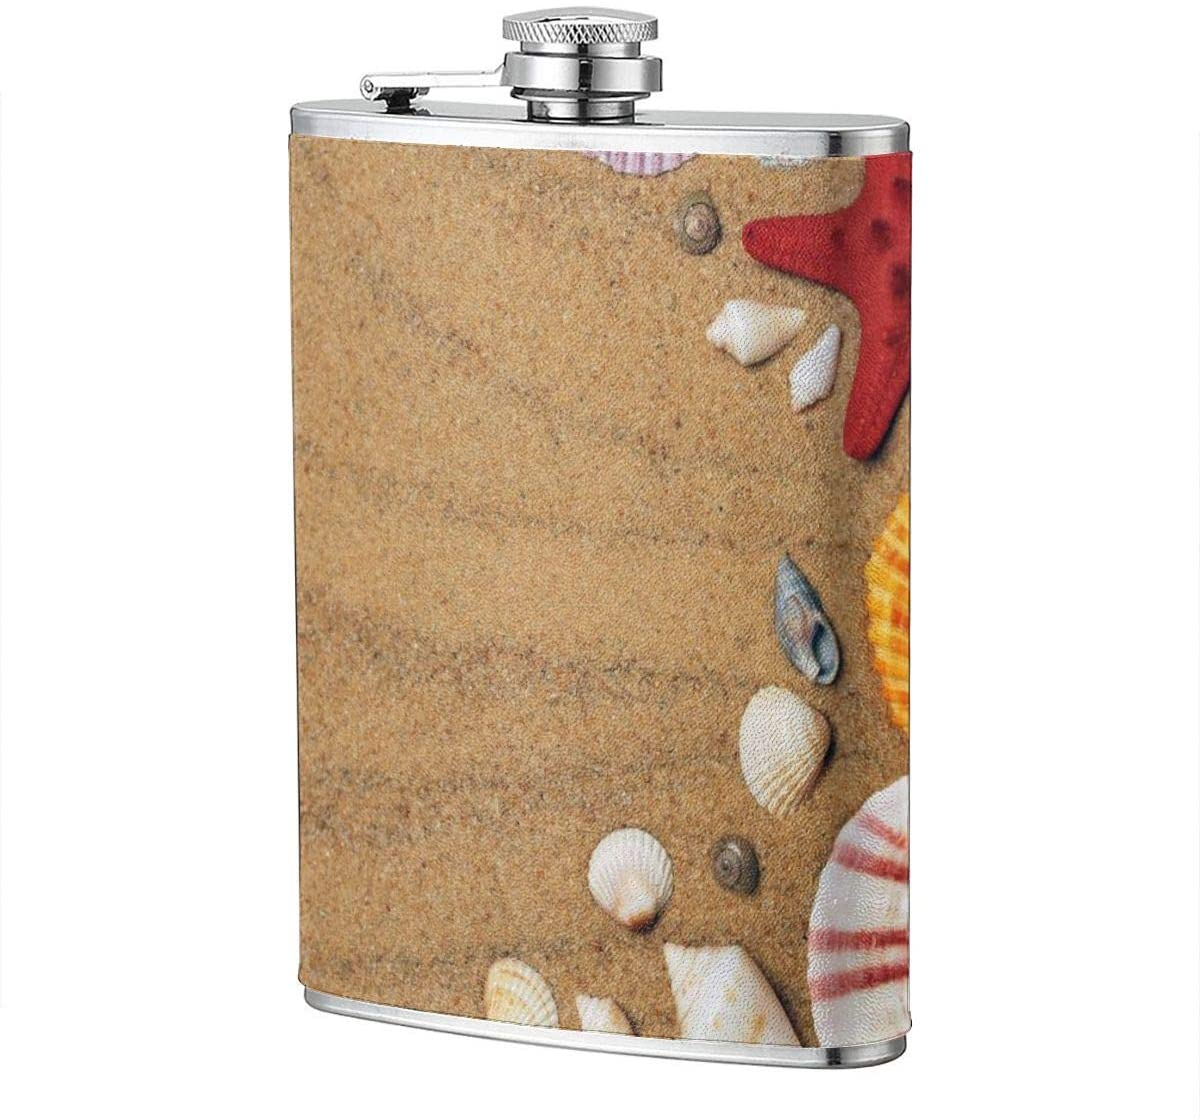 Red Starfish Shell Portable 8 Oz Stainless Steel Leak-Proof Hip Flask For Whiskey With Leather Wrap Travel Camping Wine Pot Flagon For Men Women